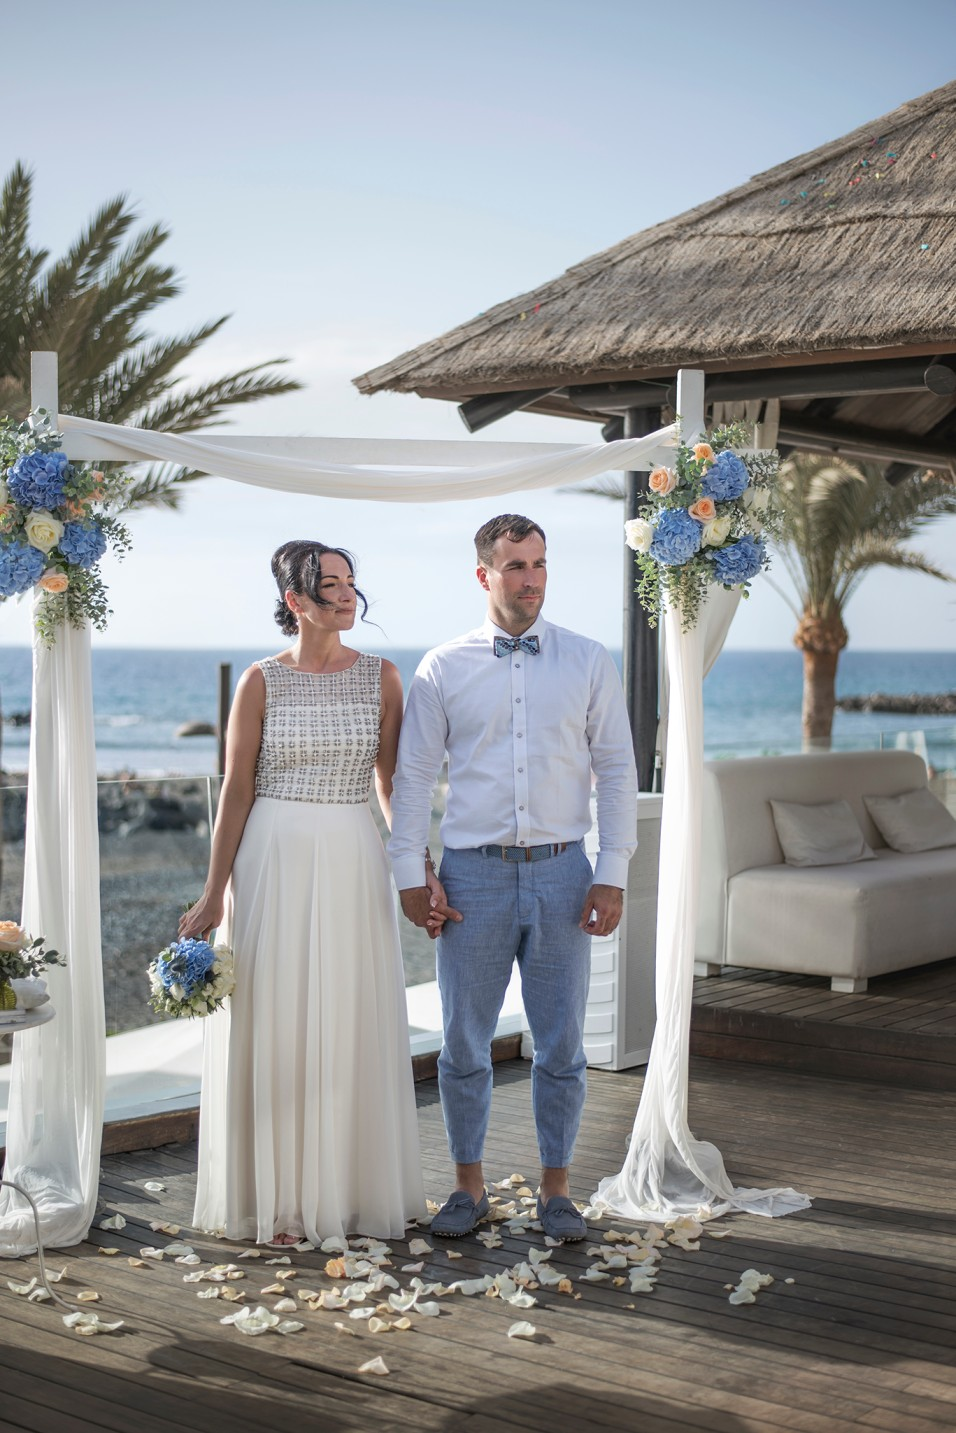 Ceremony in the terrace overlooking the beach